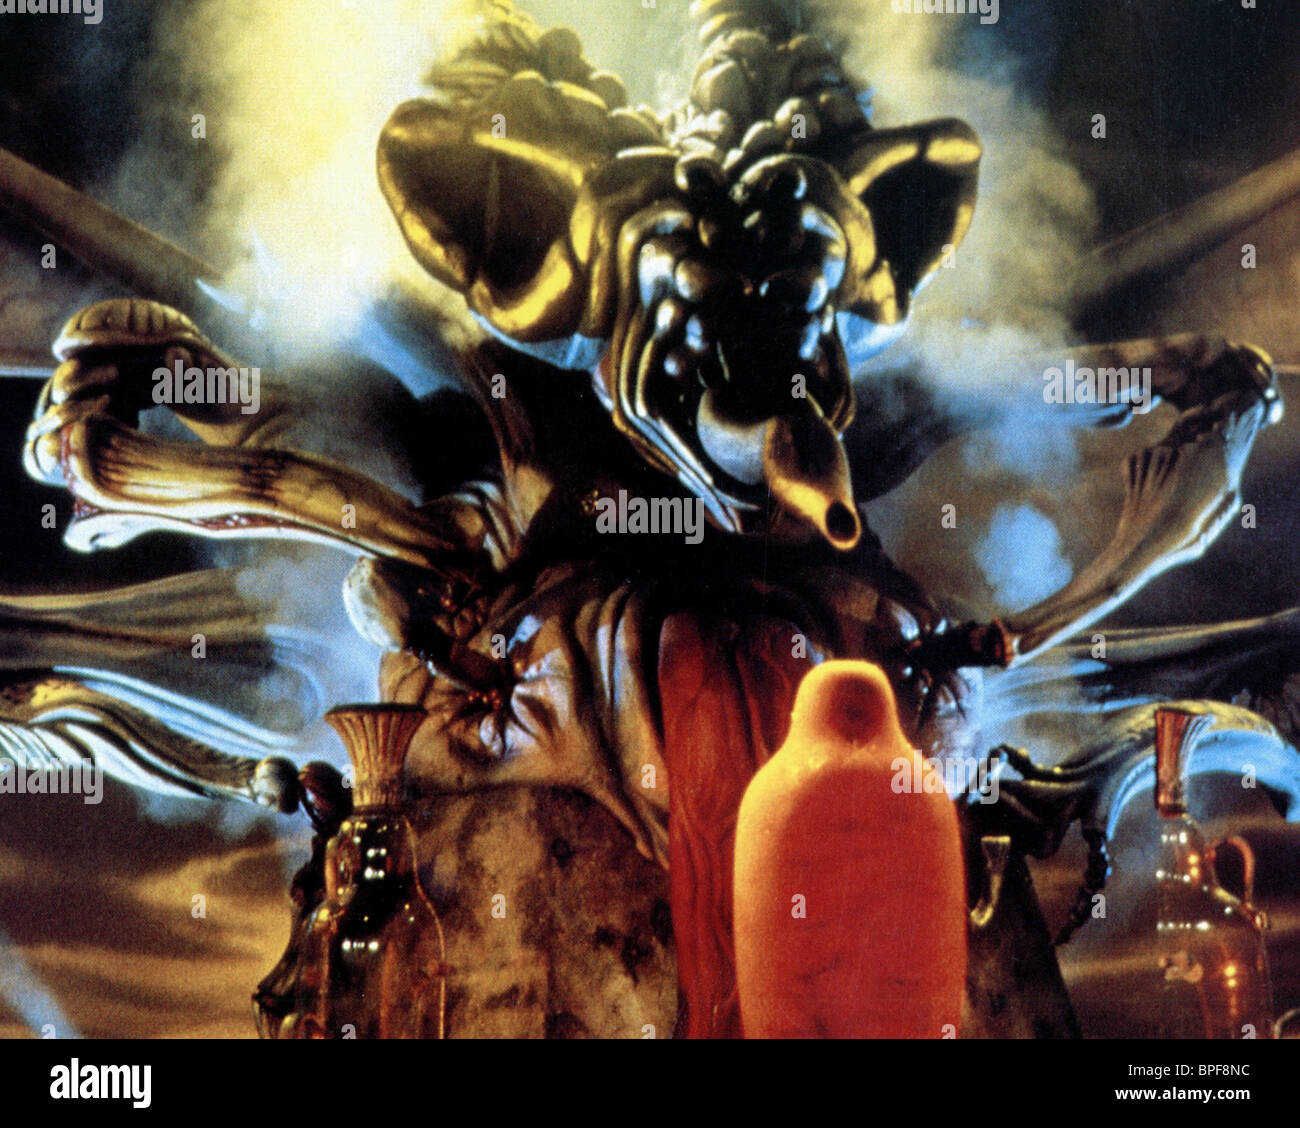 MONSTER SCENE LORD OF ILLUSIONS (1995) - Stock Image